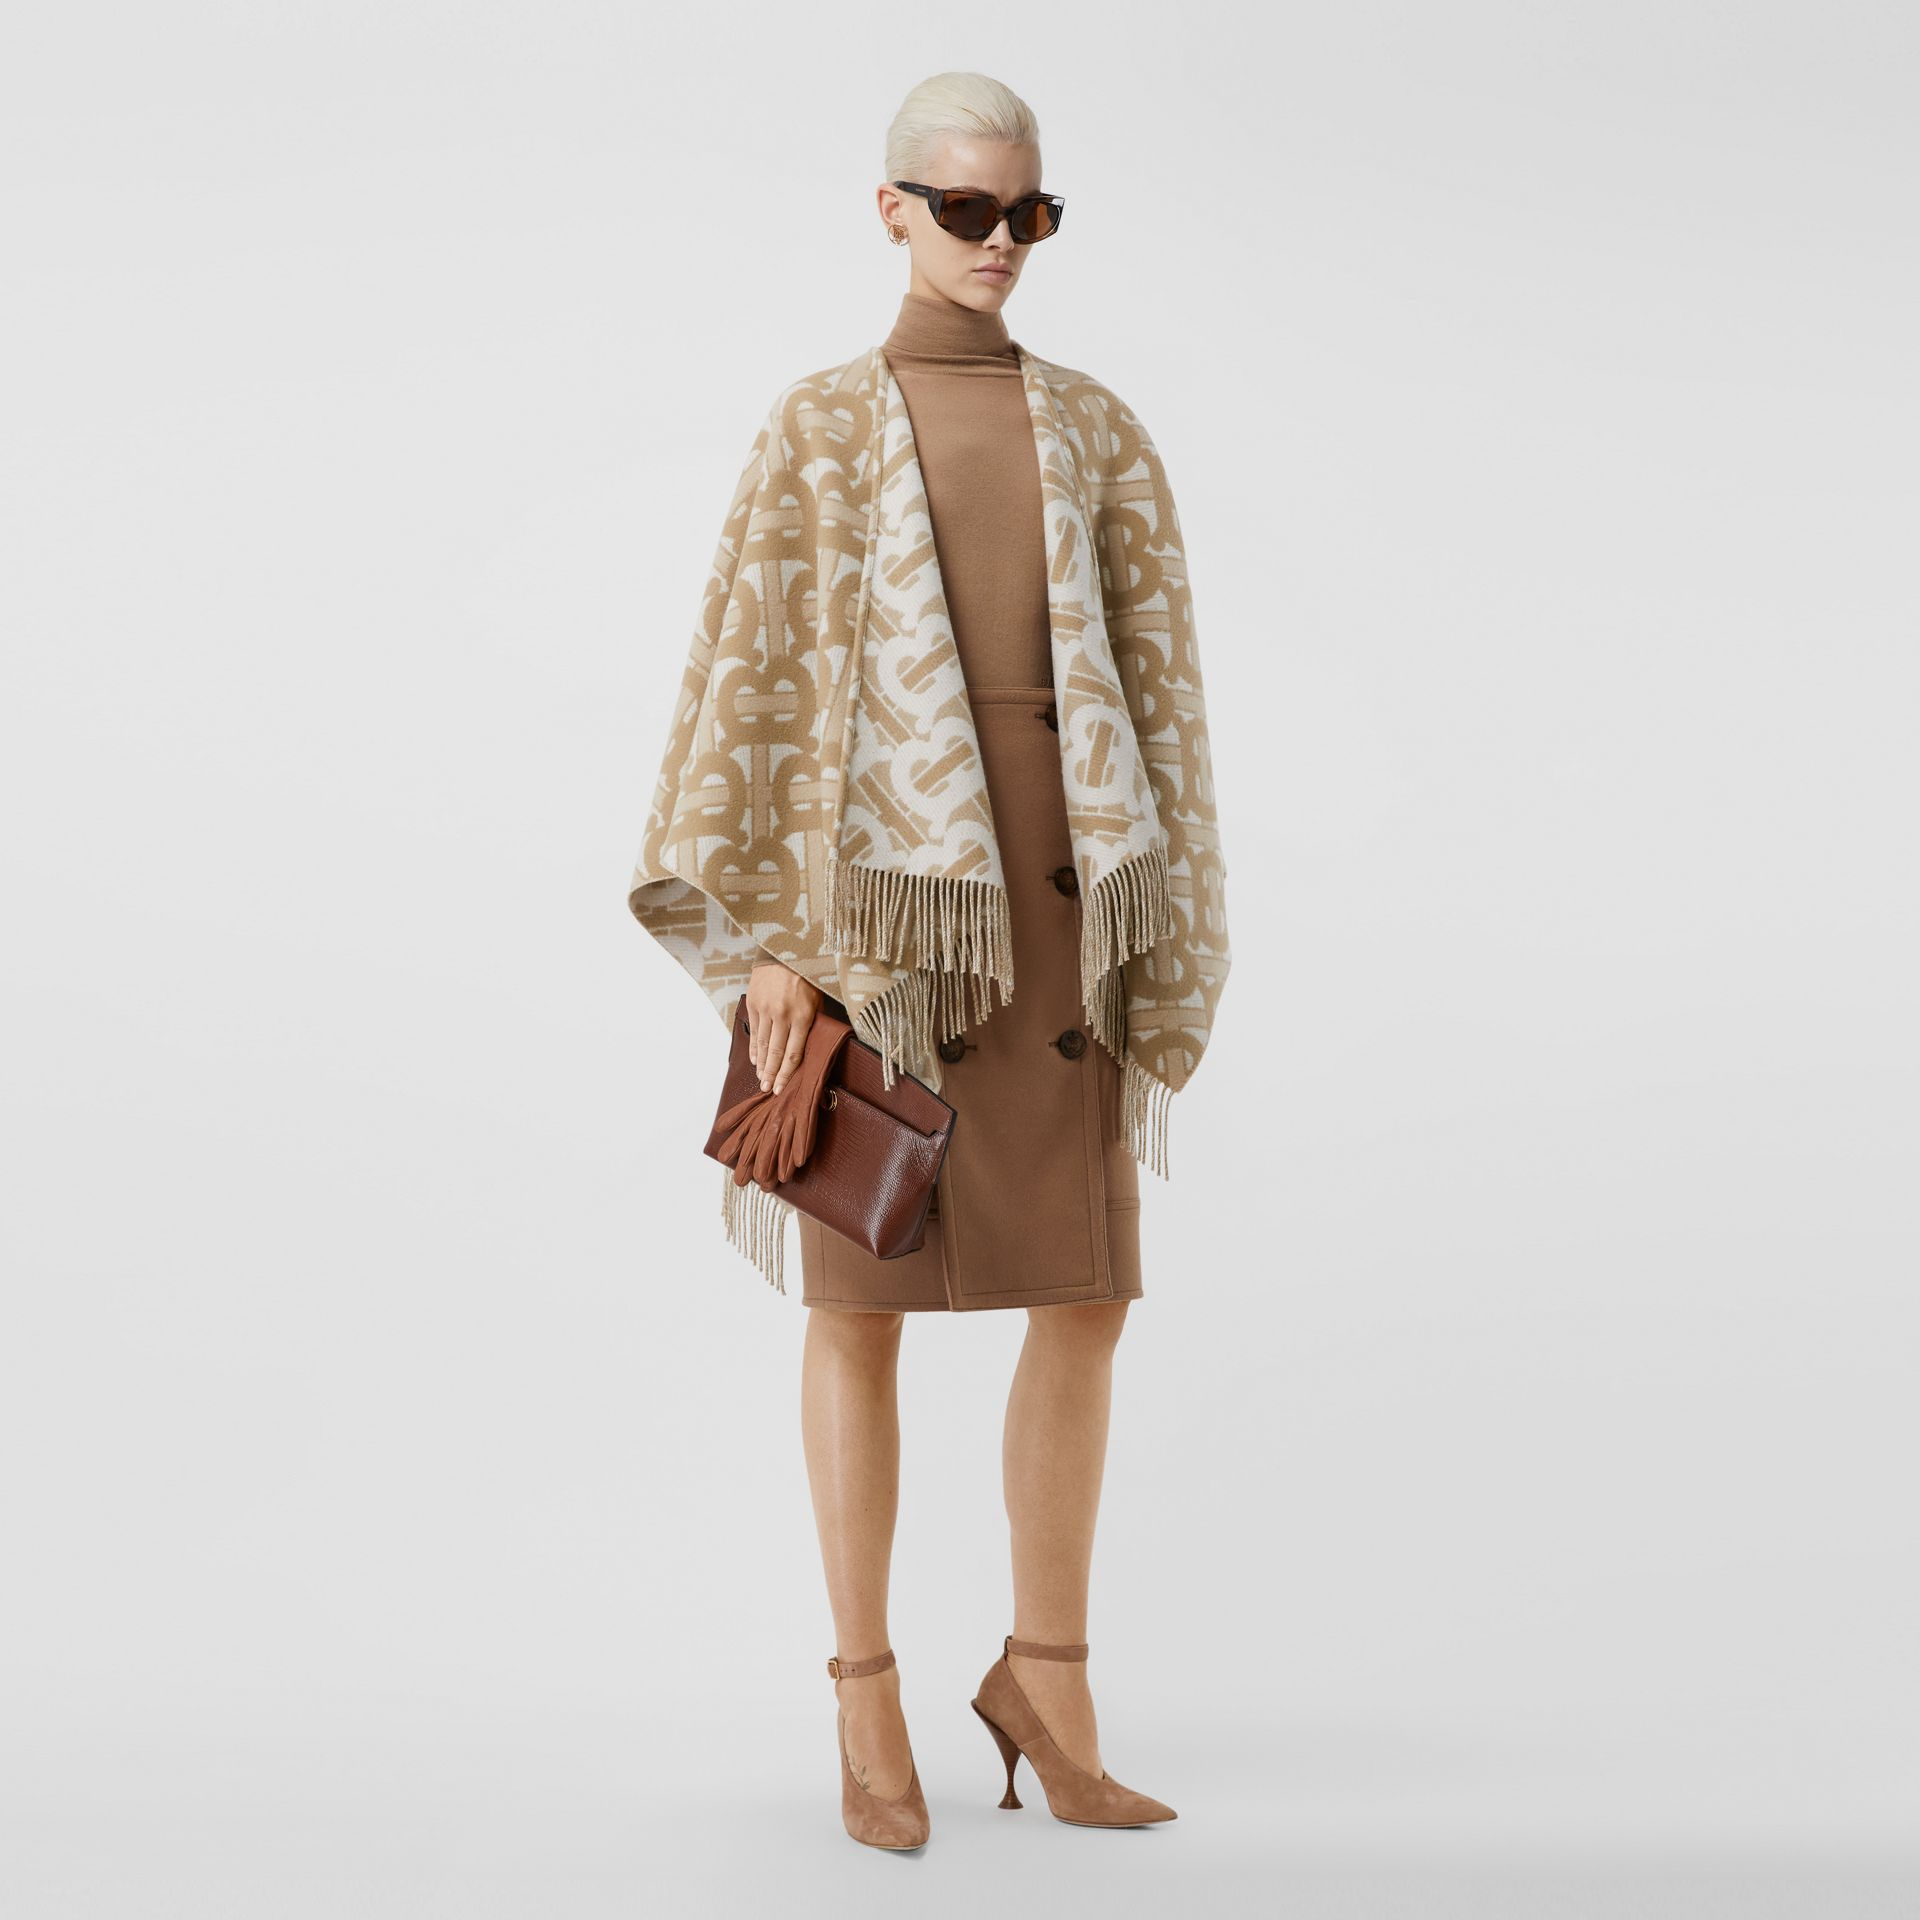 Monogram Merino Wool Cashmere Jacquard Cape in Light Sand - Women | Burberry - gallery image 0